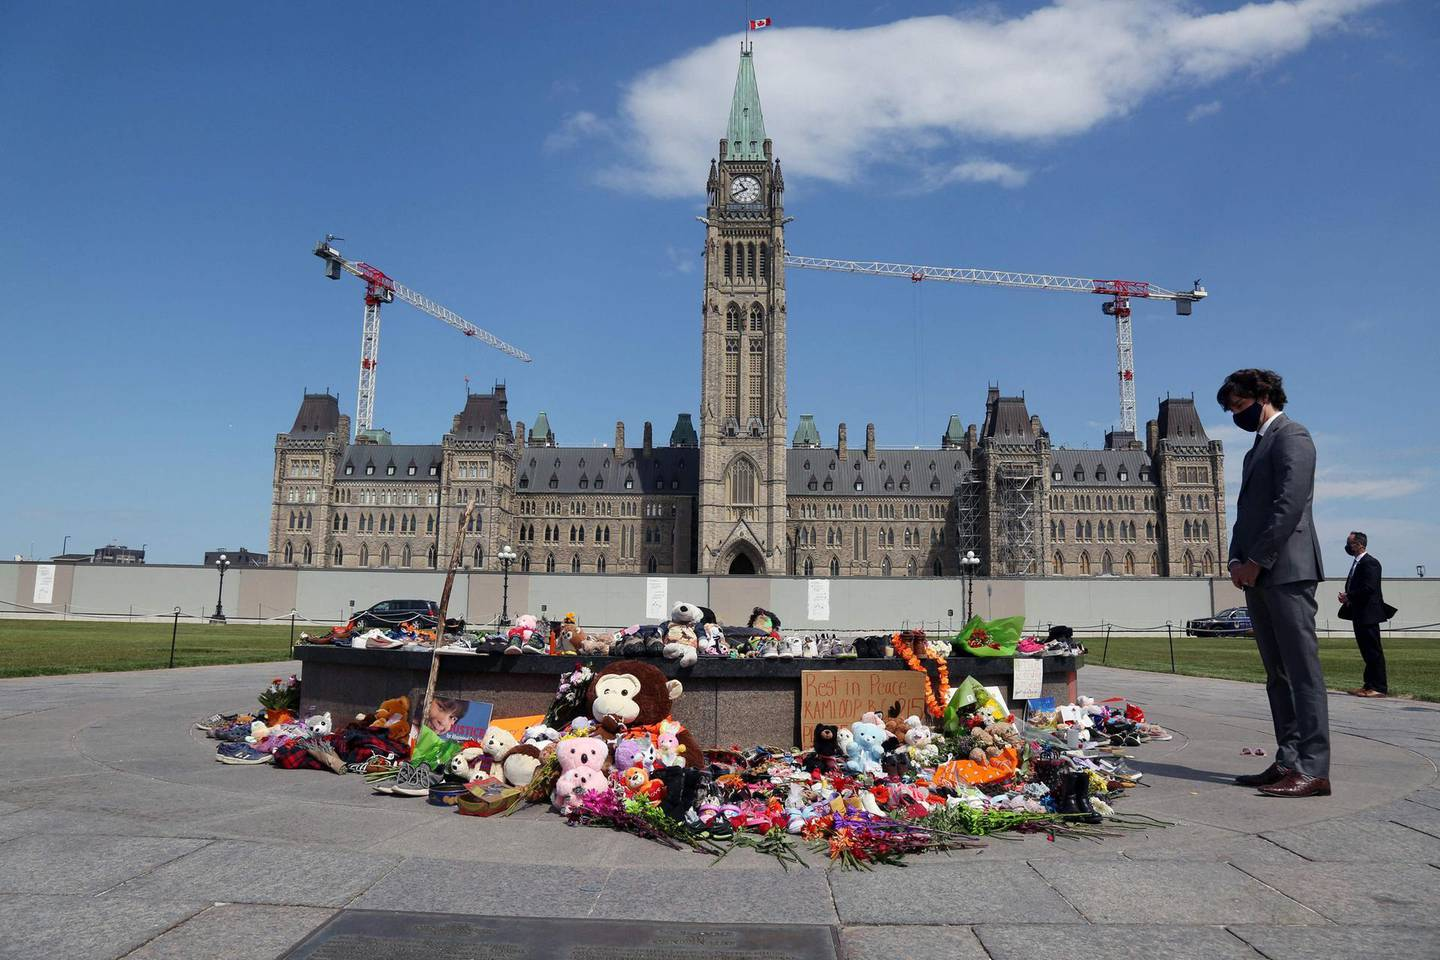 """Canadian Prime Minister Justin Trudeau visits the makeshift memorial erected in honor of the 215 indigenous children remains found at a boarding school in British Columbia, on Parliament Hill June 1, 2021 in Ottawa.   Trudeau, who has made reconciliation with Canada's nearly 1.7 million indigenous people a priority of his government since coming to power in 2015, said he would speak with his ministers to shore up """"next and further things we need to do to support (residential school) survivors and the community."""" / AFP / Dave Chan"""